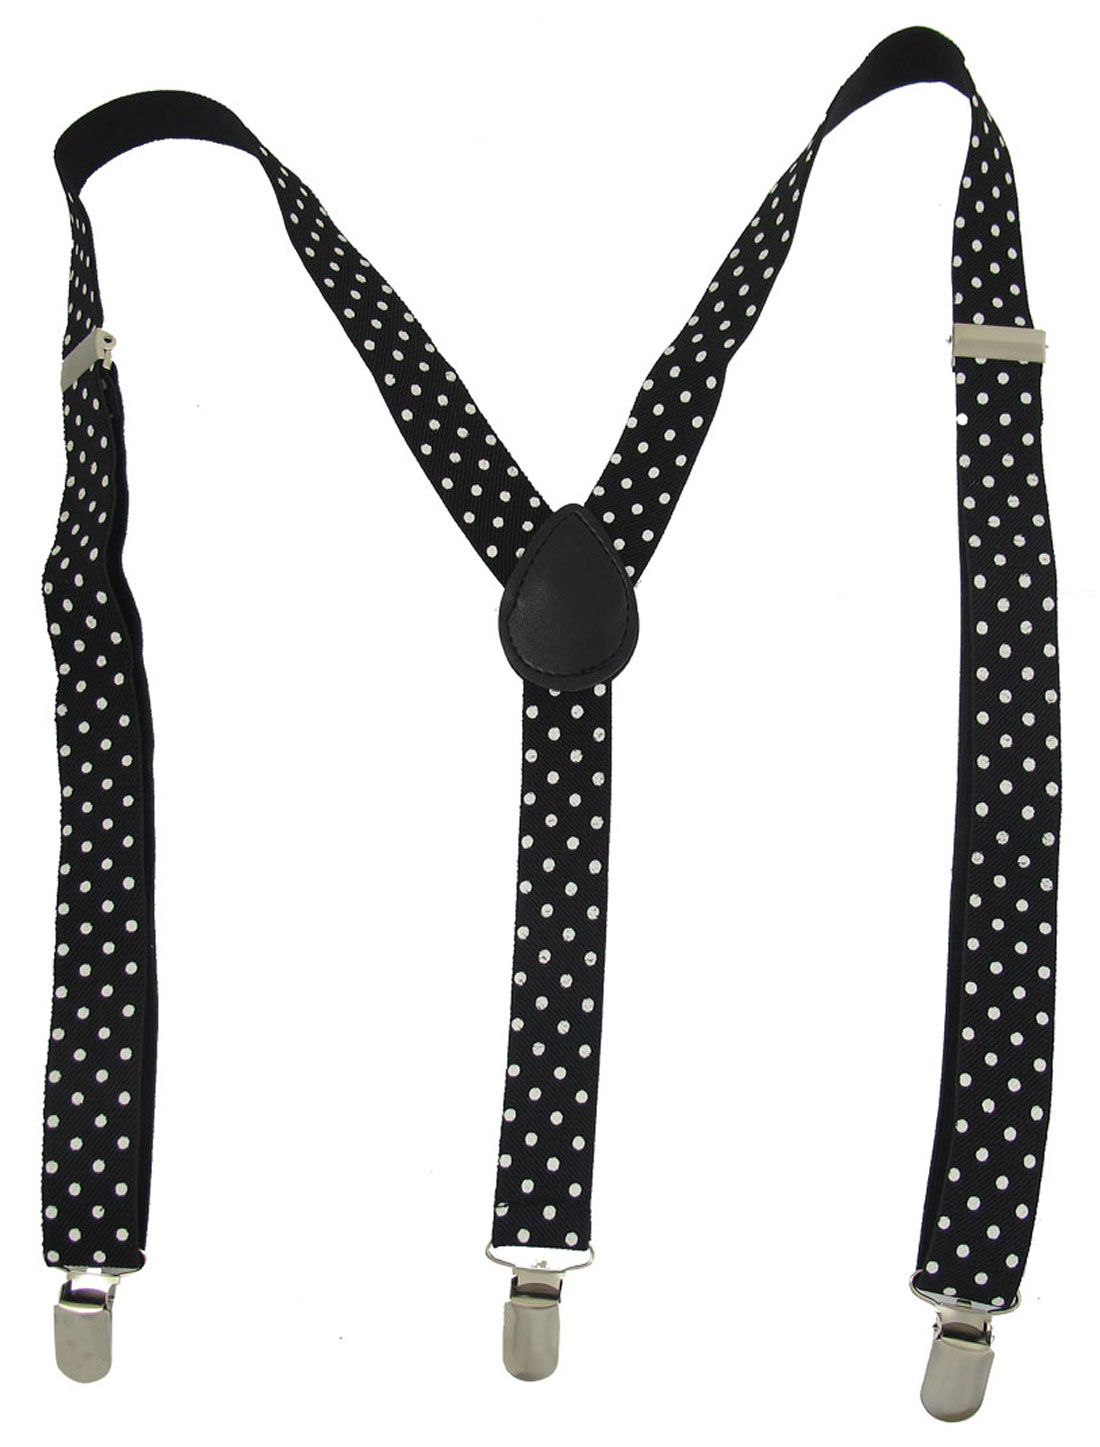 White Dots Pattern Adjustable Y-Shaped Suspender Braces Black for Women Men